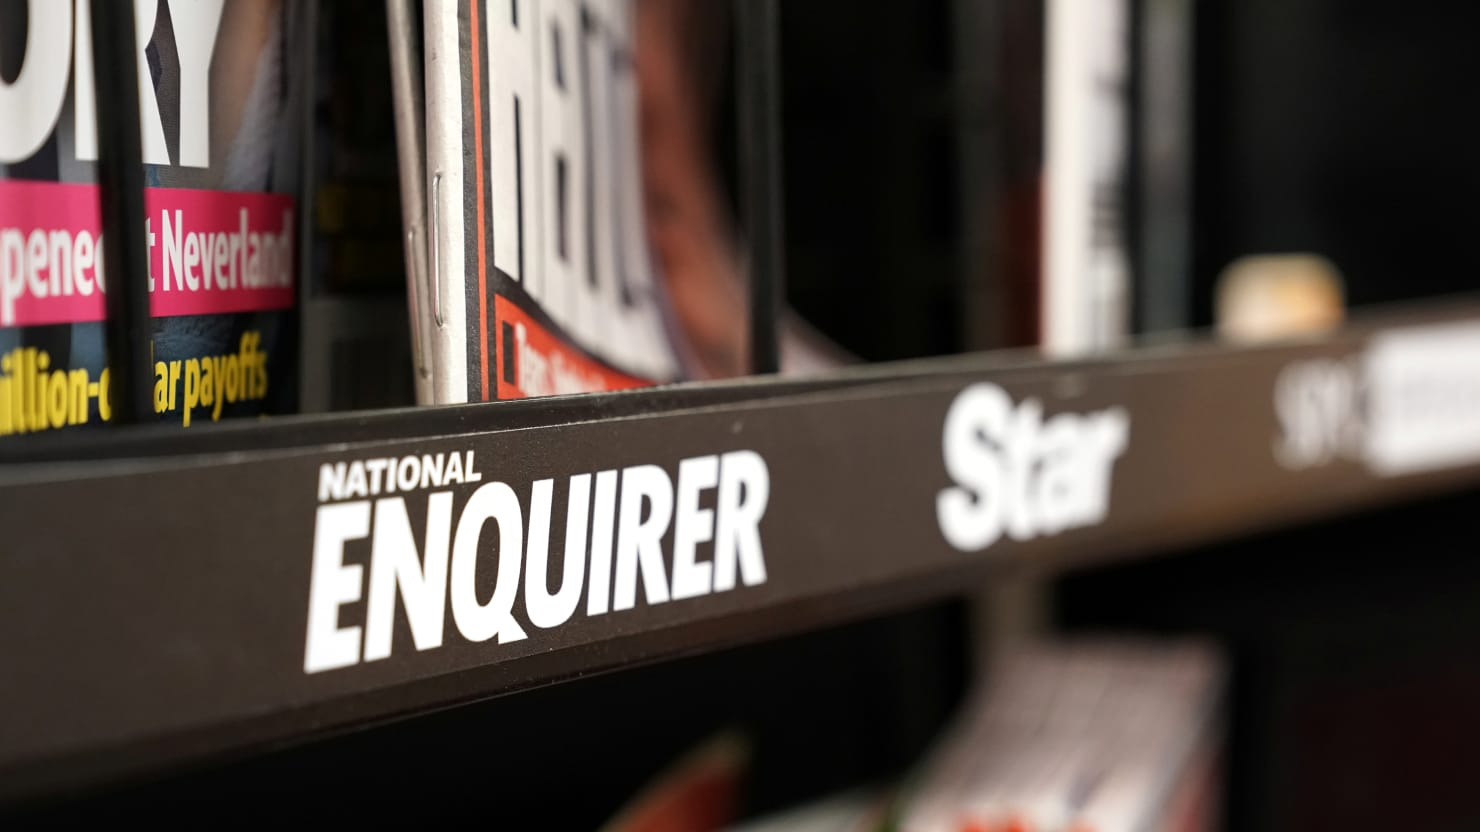 National Enquirer Will Be Sold to Hudson News CEO for $100 Million: WaPo